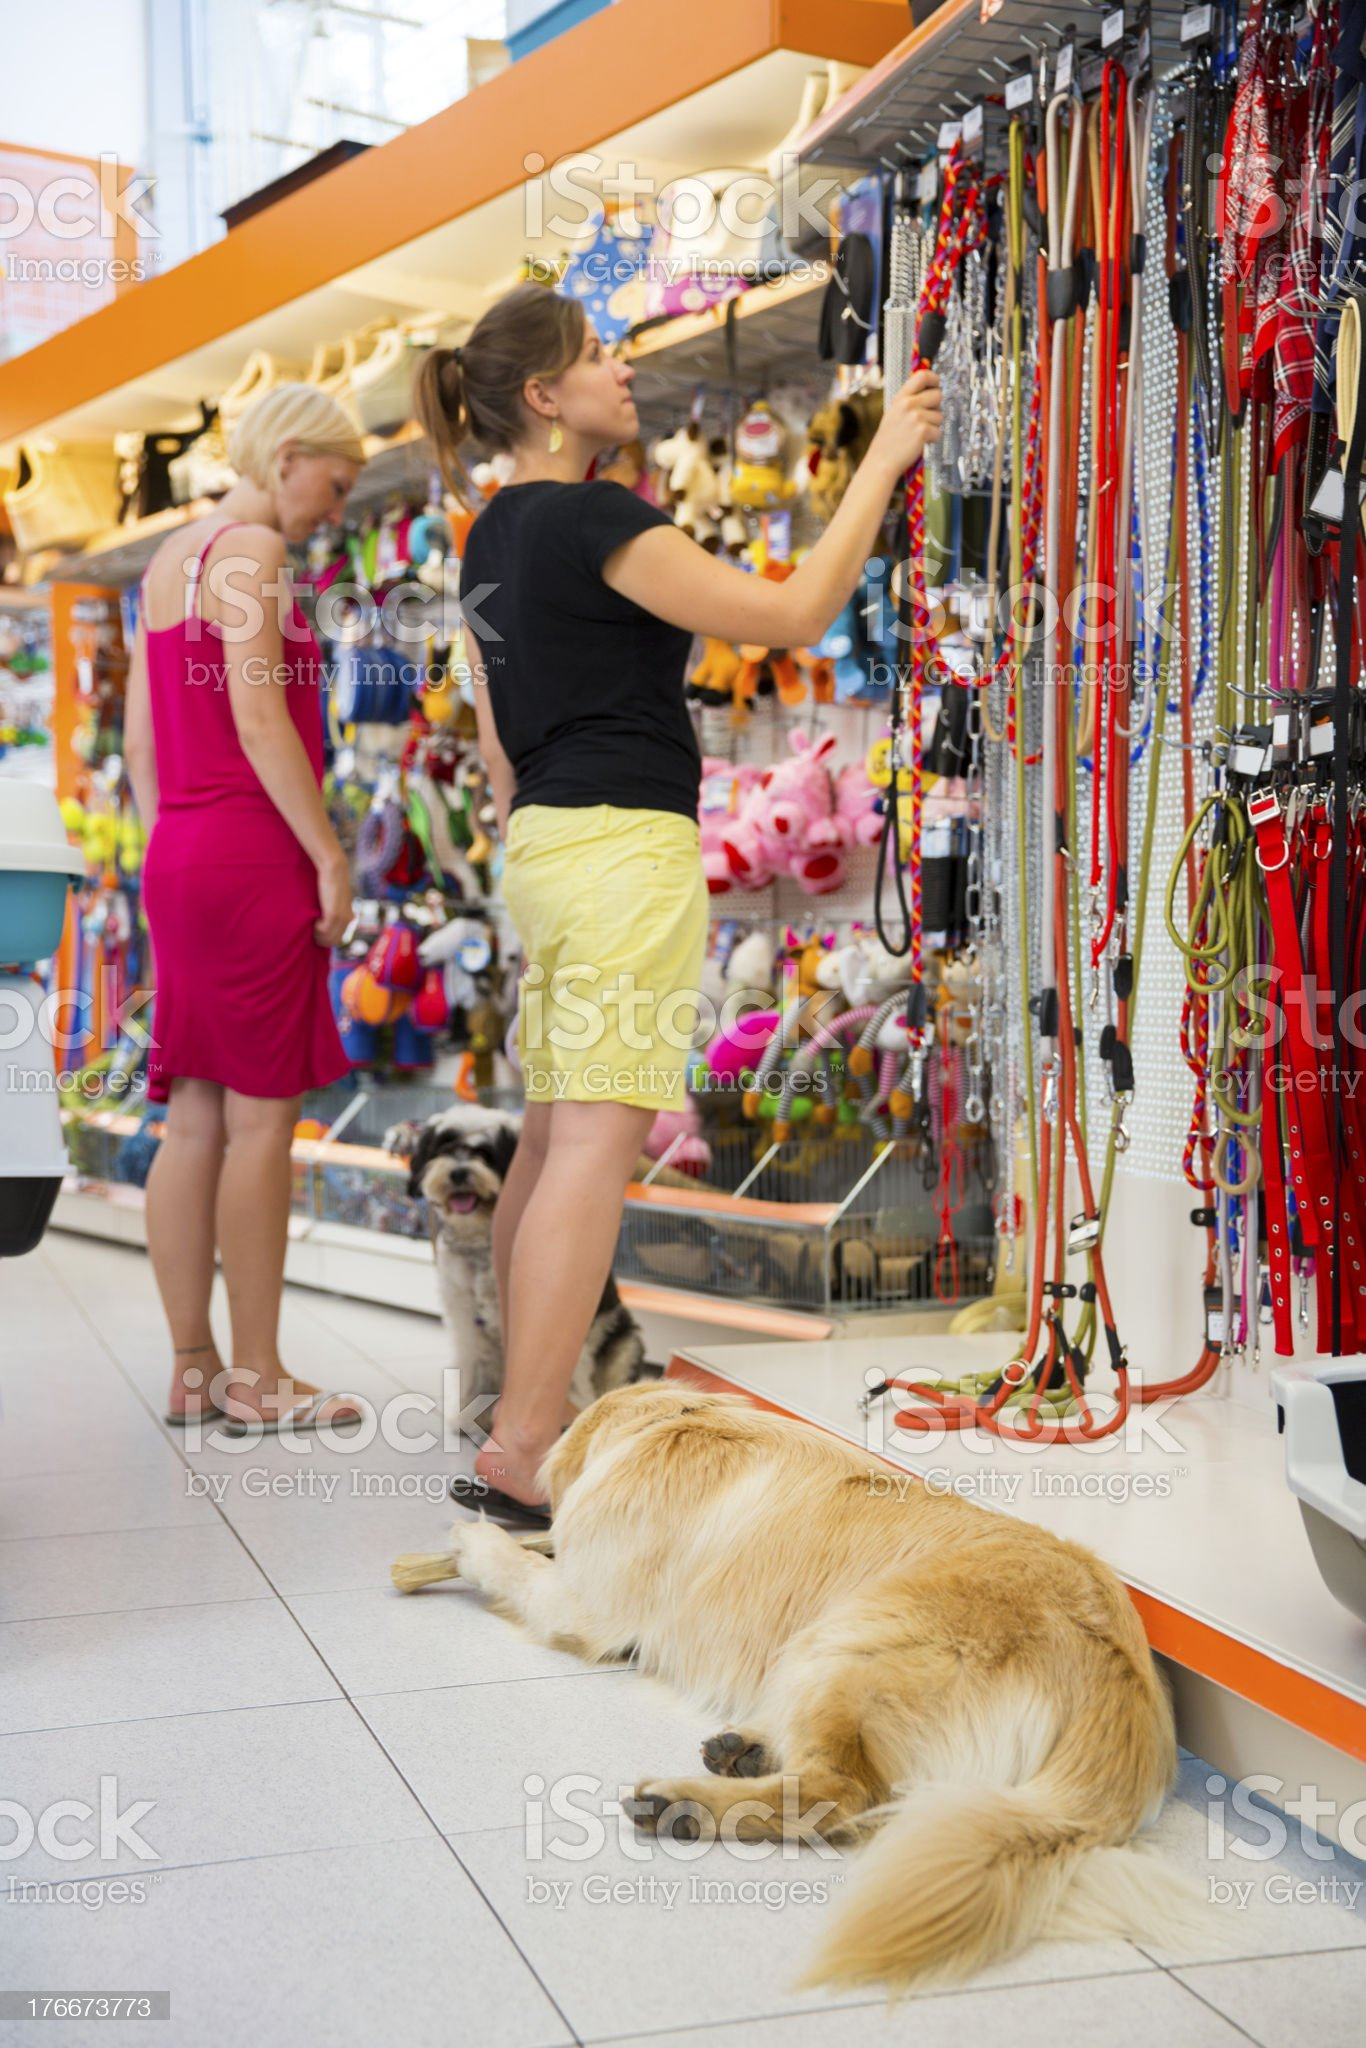 Cute Golden retriever and Tibetan Terrier in pet store royalty-free stock photo